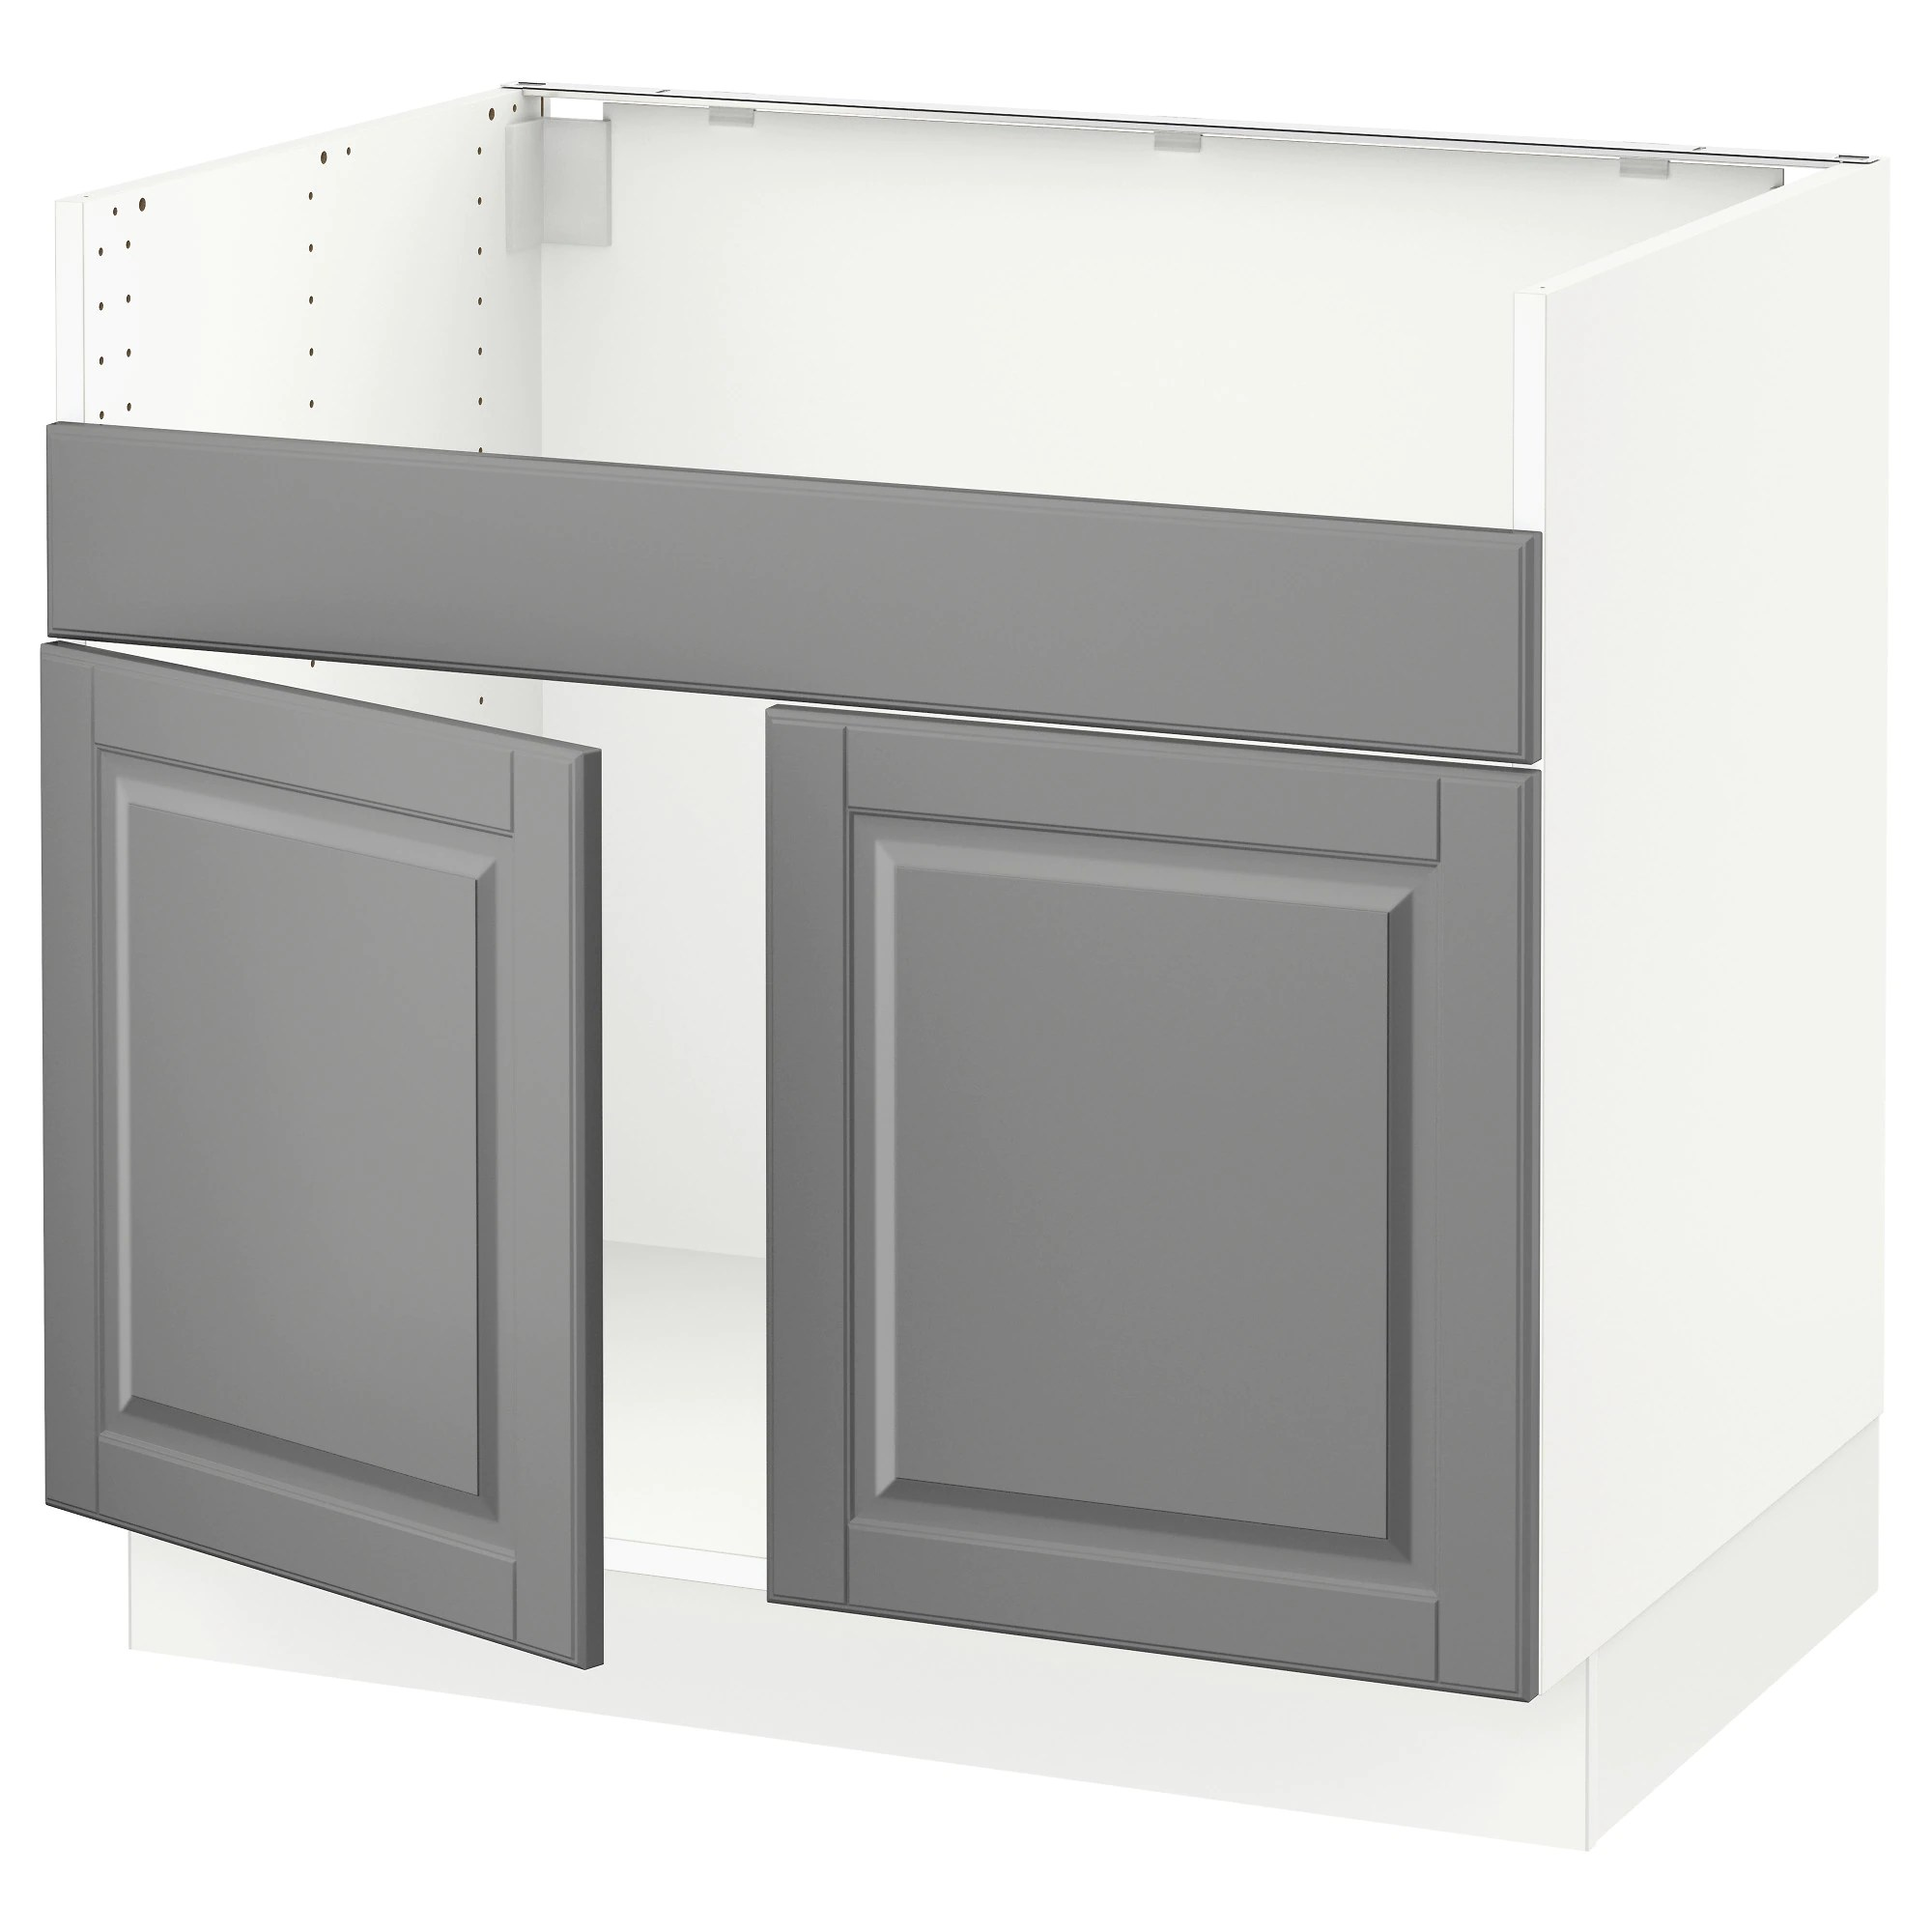 S kitchen sink cabinets Inter IKEA Systems B V Privacy Policy